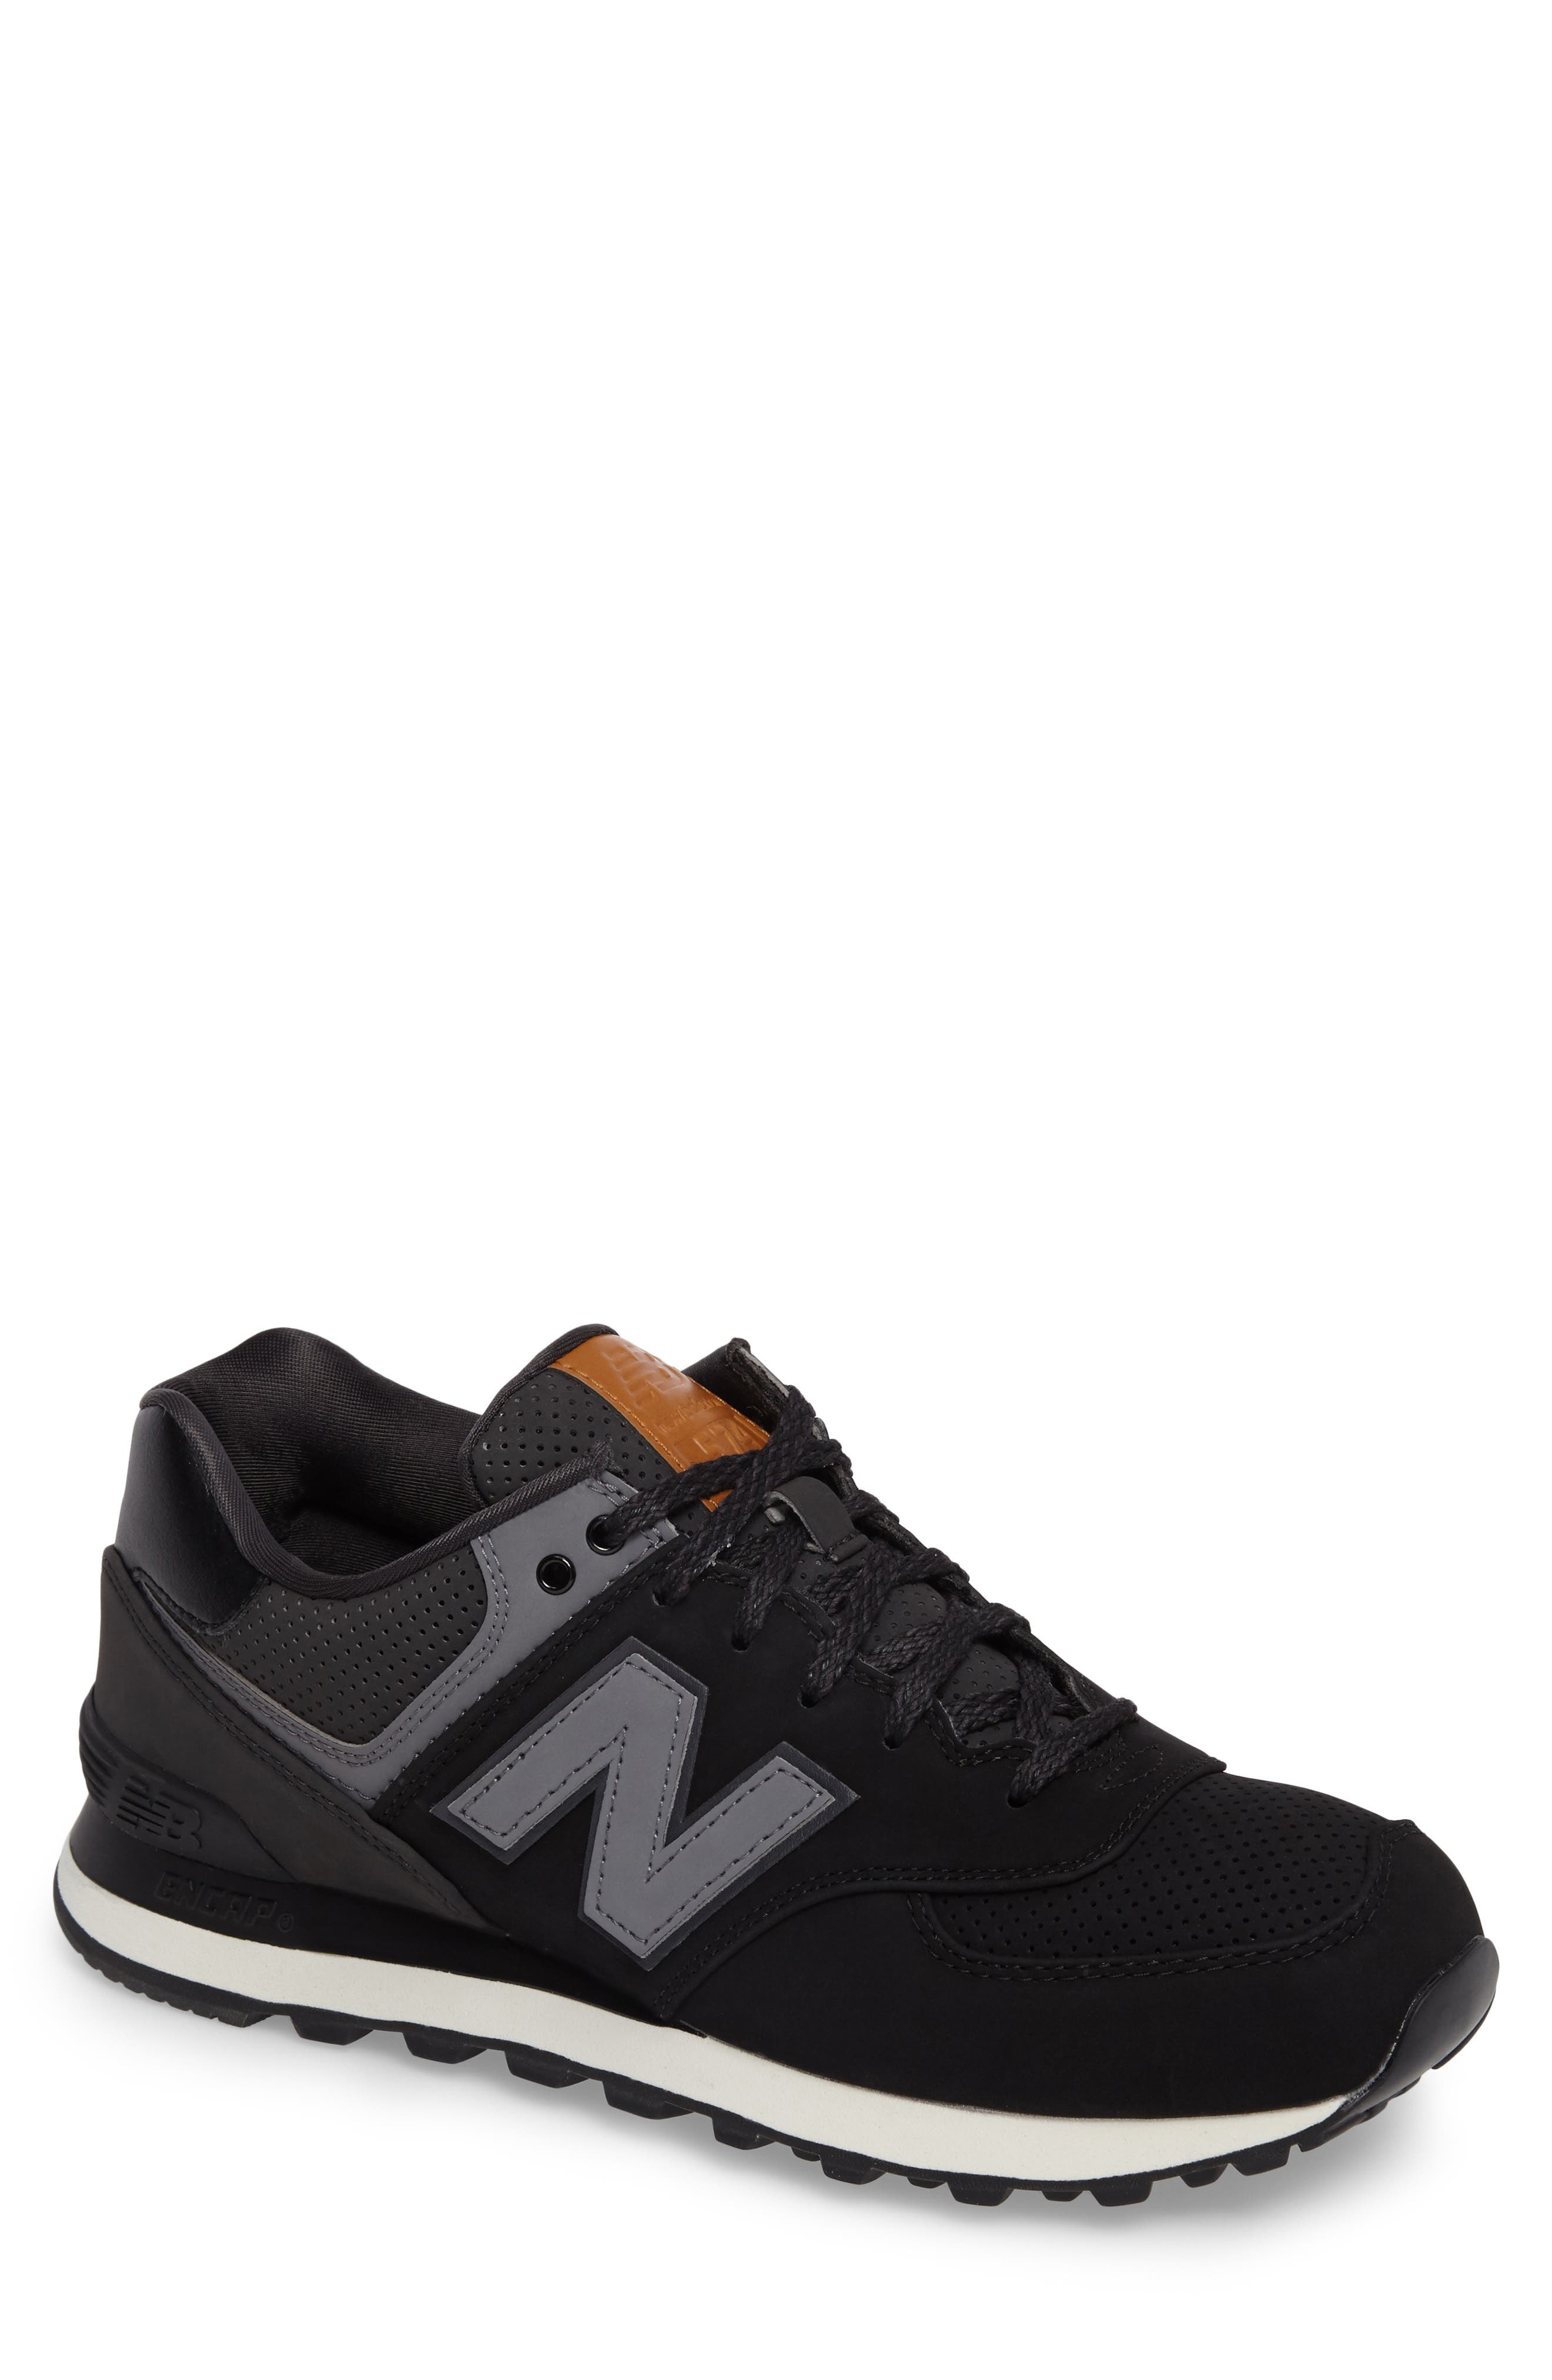 New Balance 574 Outdoor Sneaker (Men)